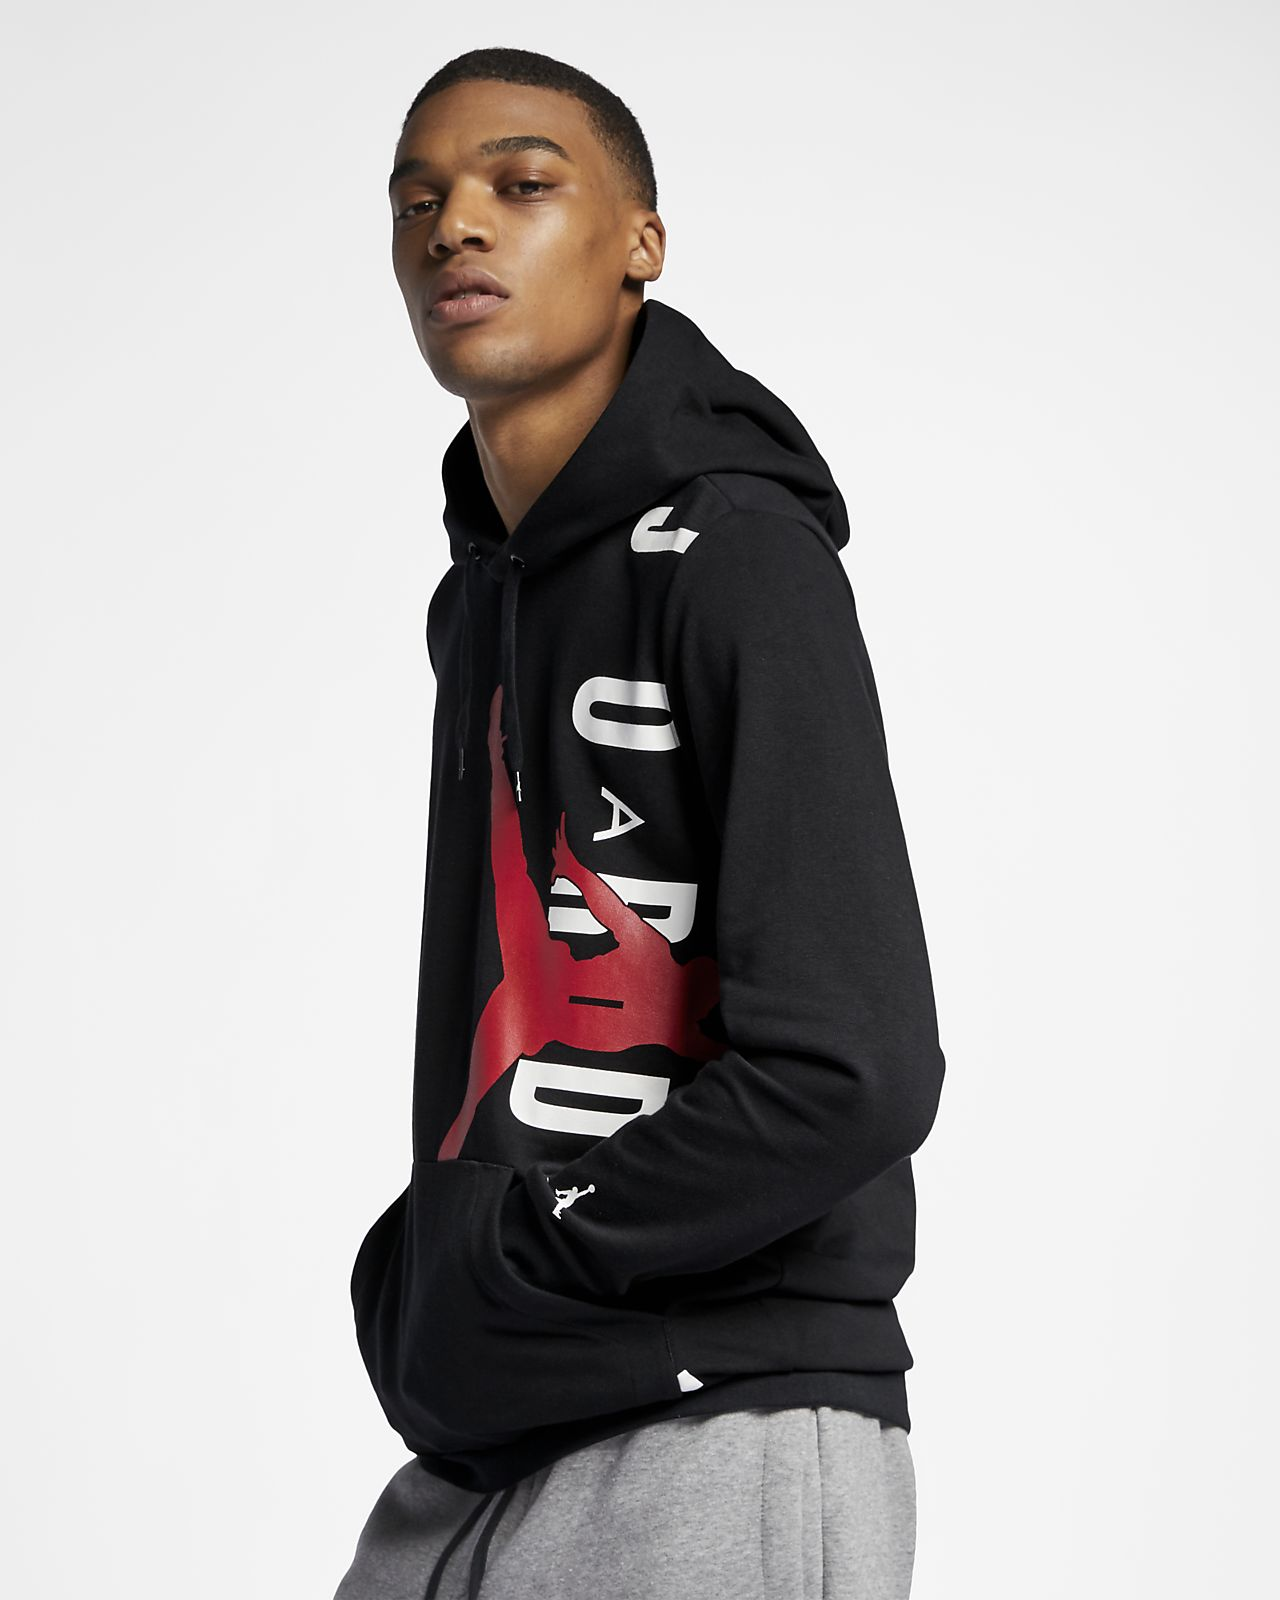 b7e0cac4c807fa Jordan Jumpman Air Lightweight Men s Fleece Sweatshirt. Nike.com LU